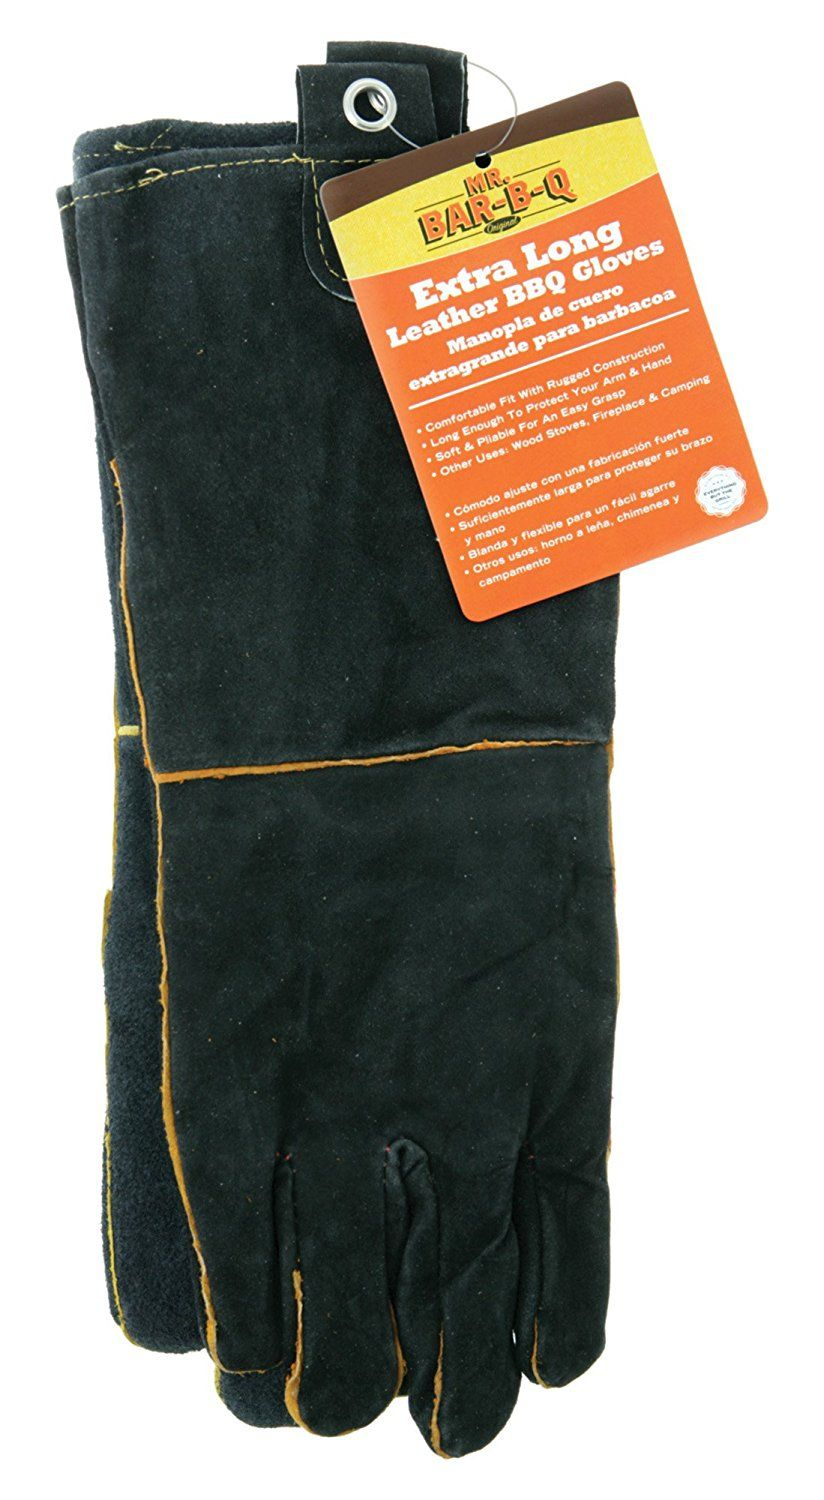 Mr barbq 40113x leather barbecue gloves hurry